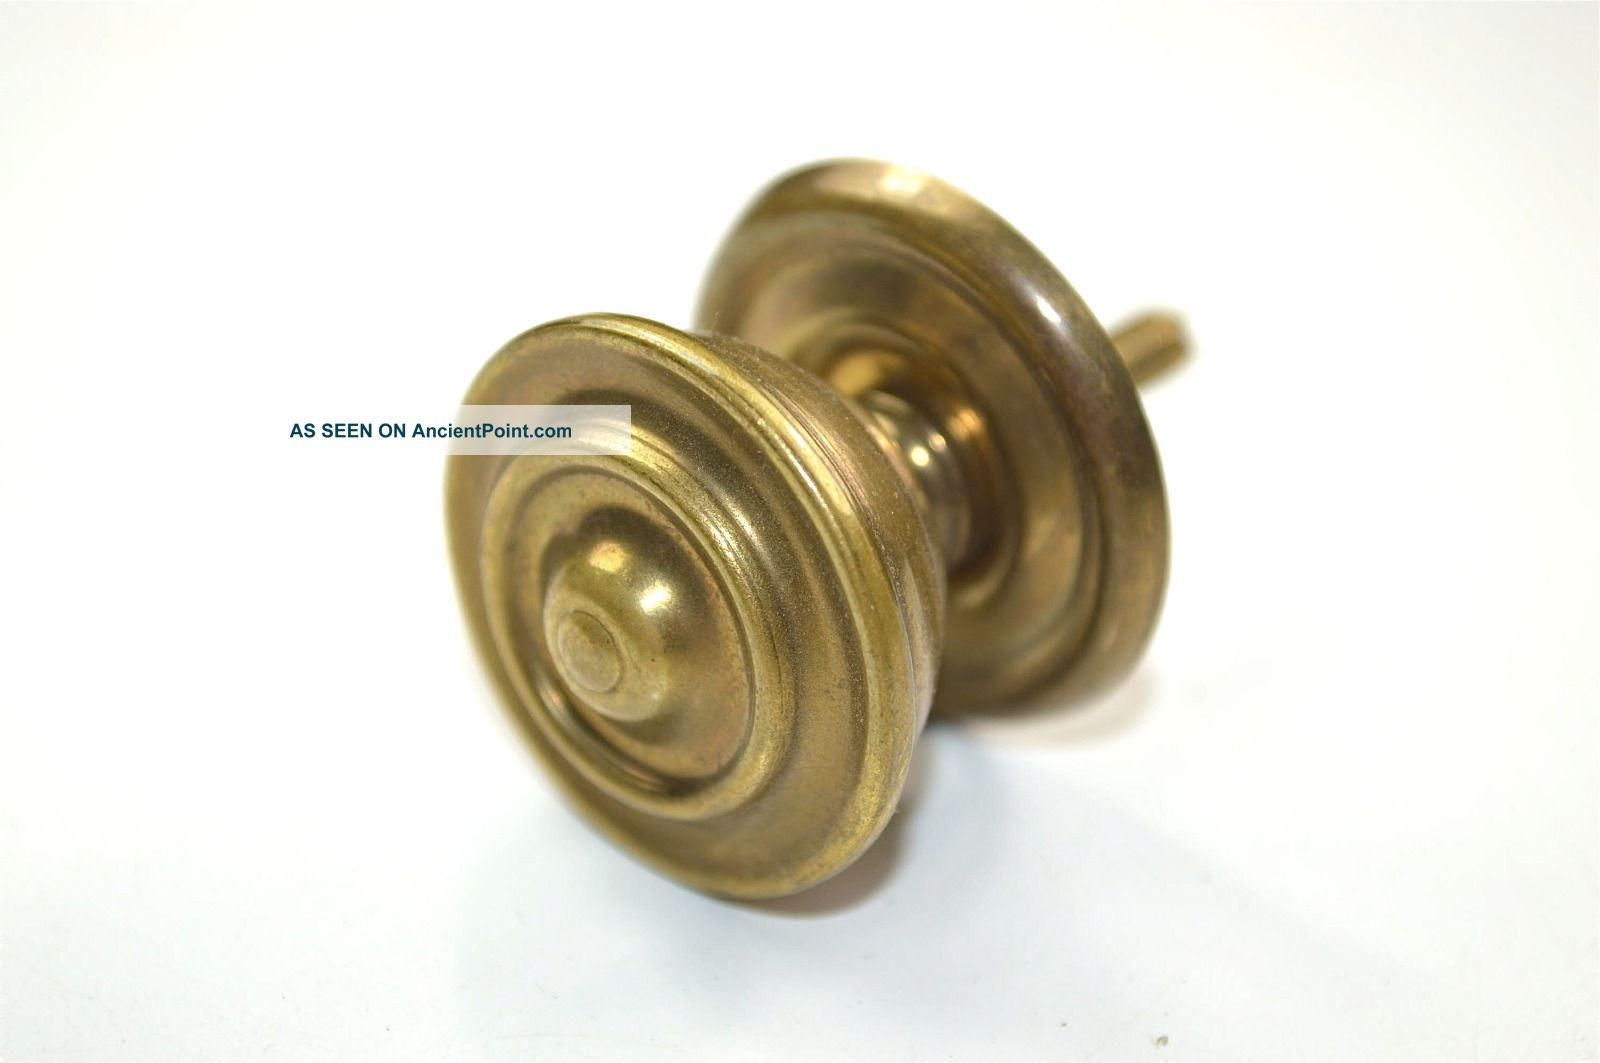 Vintage Antique Brass Classic Cupboard Knob Cabinet Handle Pull P12 Other Antique Hardware photo